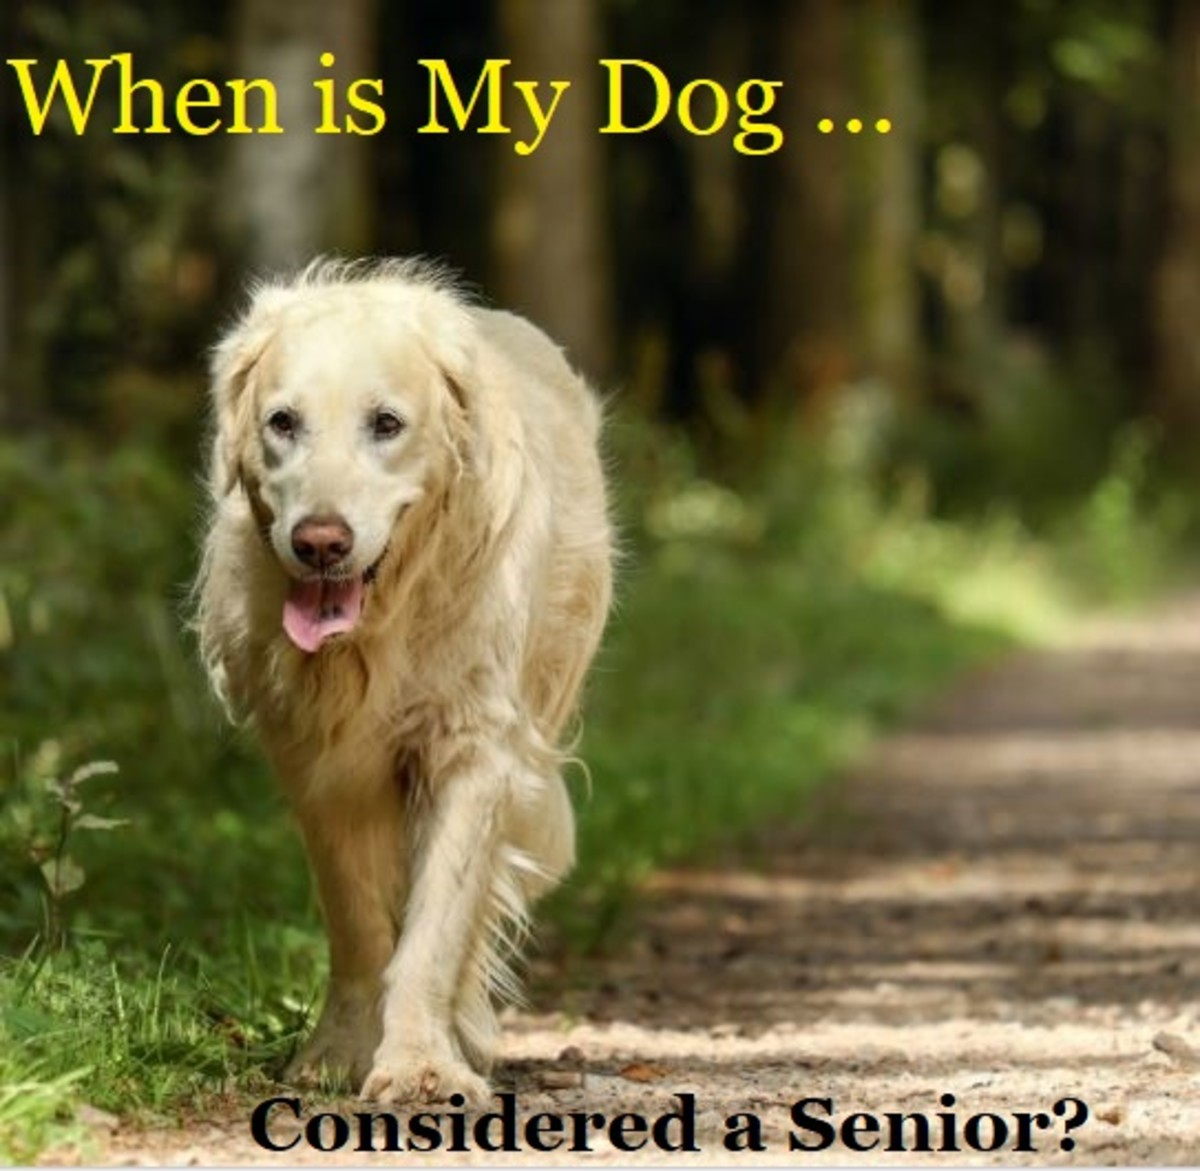 When is a Dog Considered a Senior?